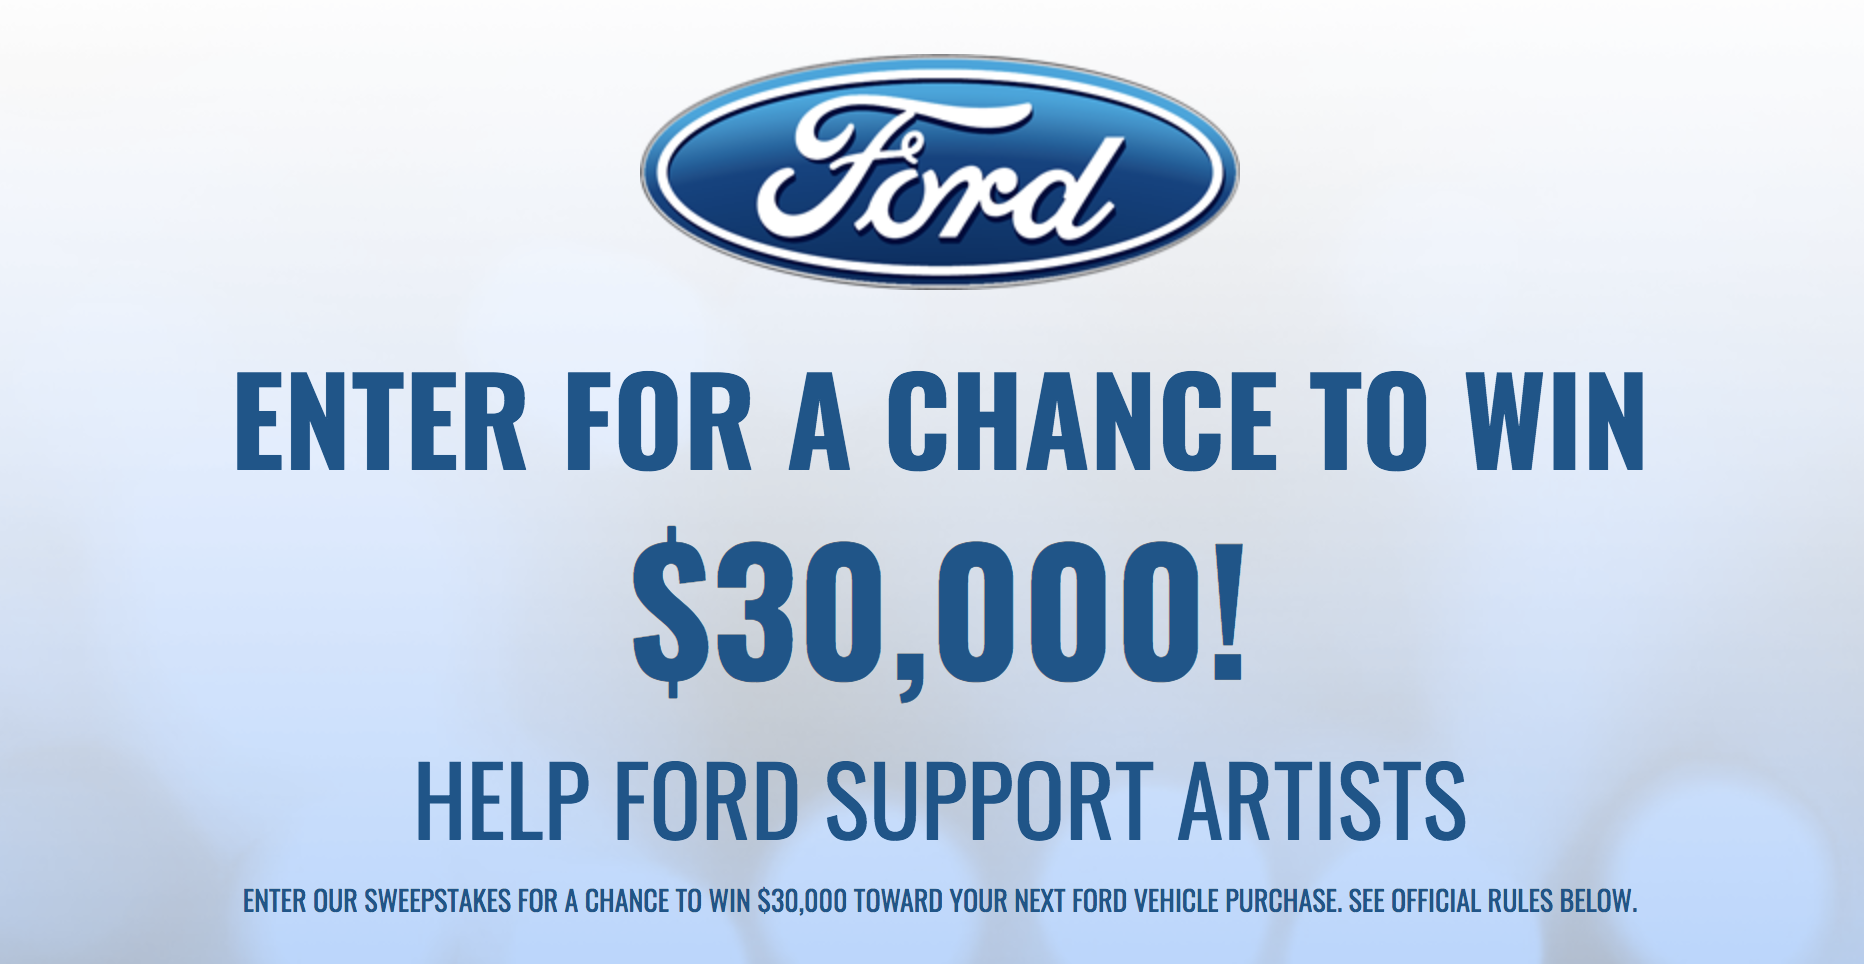 BYG Music Ford $30,000 Sweepstakes